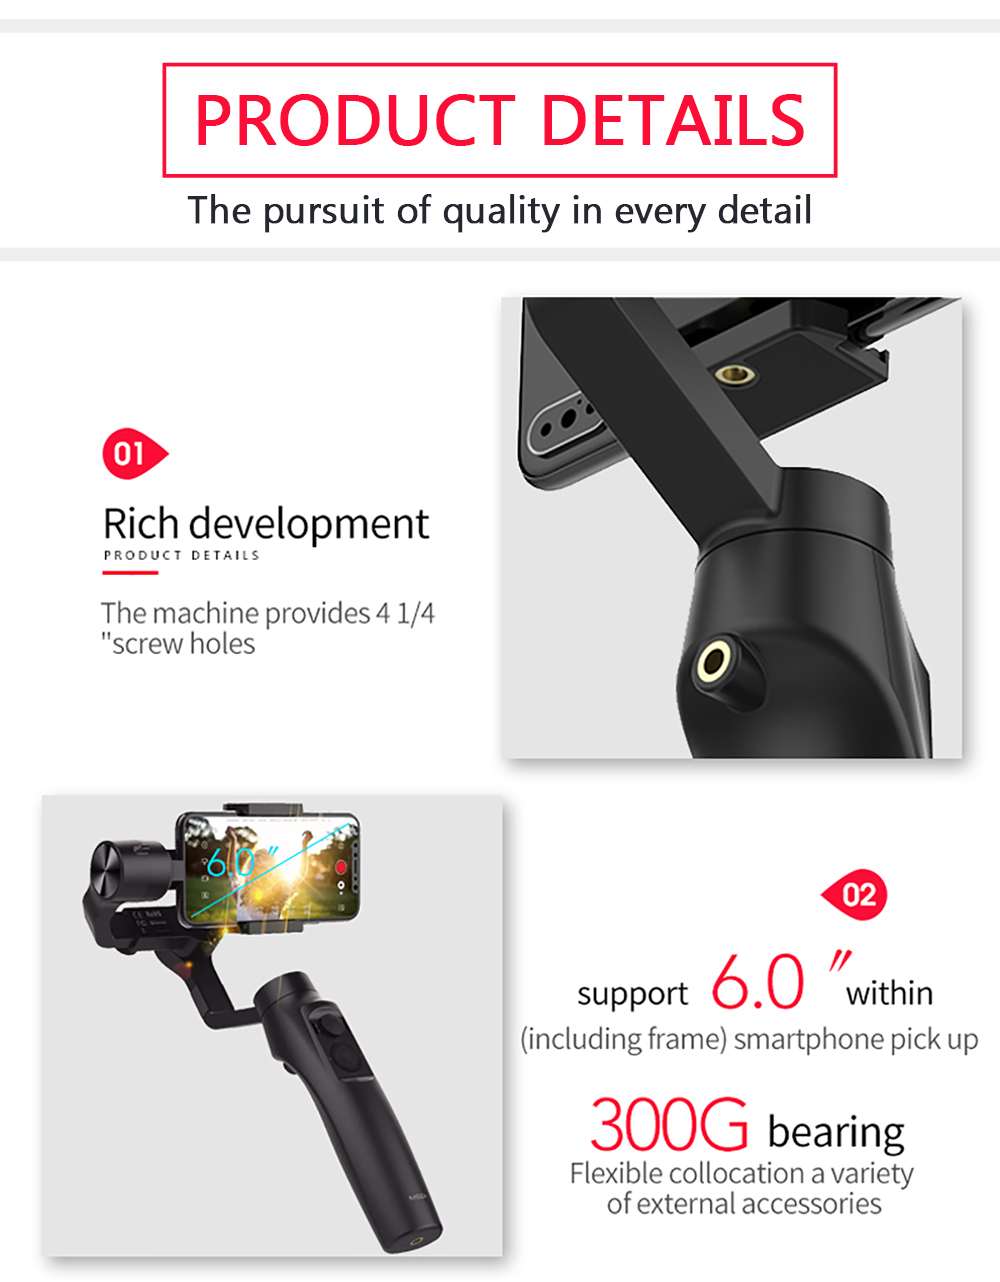 MOZAMini-Mi 3-Axis Handheld Gimbal Stabilizer for Smart Phone/Gopro/DJI Osmo with Tripod